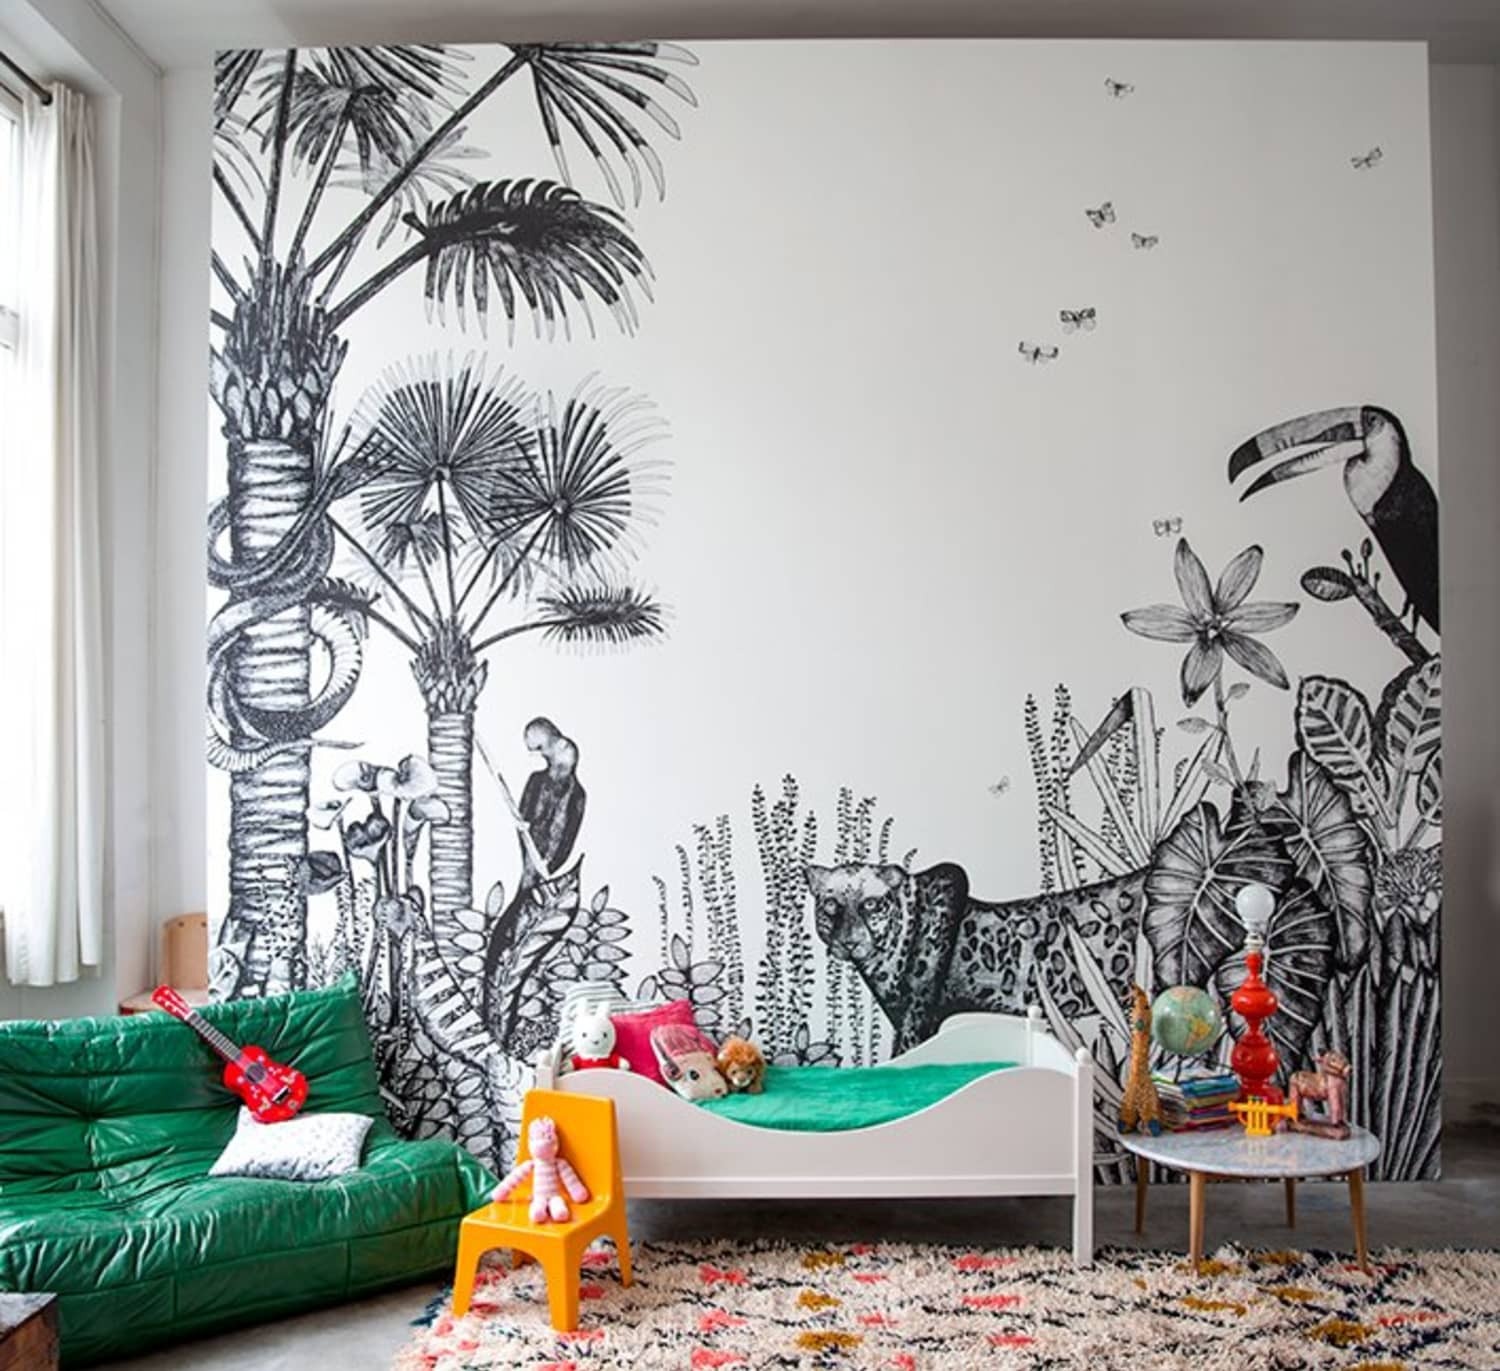 Top Wallpaper: The Wild Wallpaper by Minakani Lab & Two More | Apartment Therapy